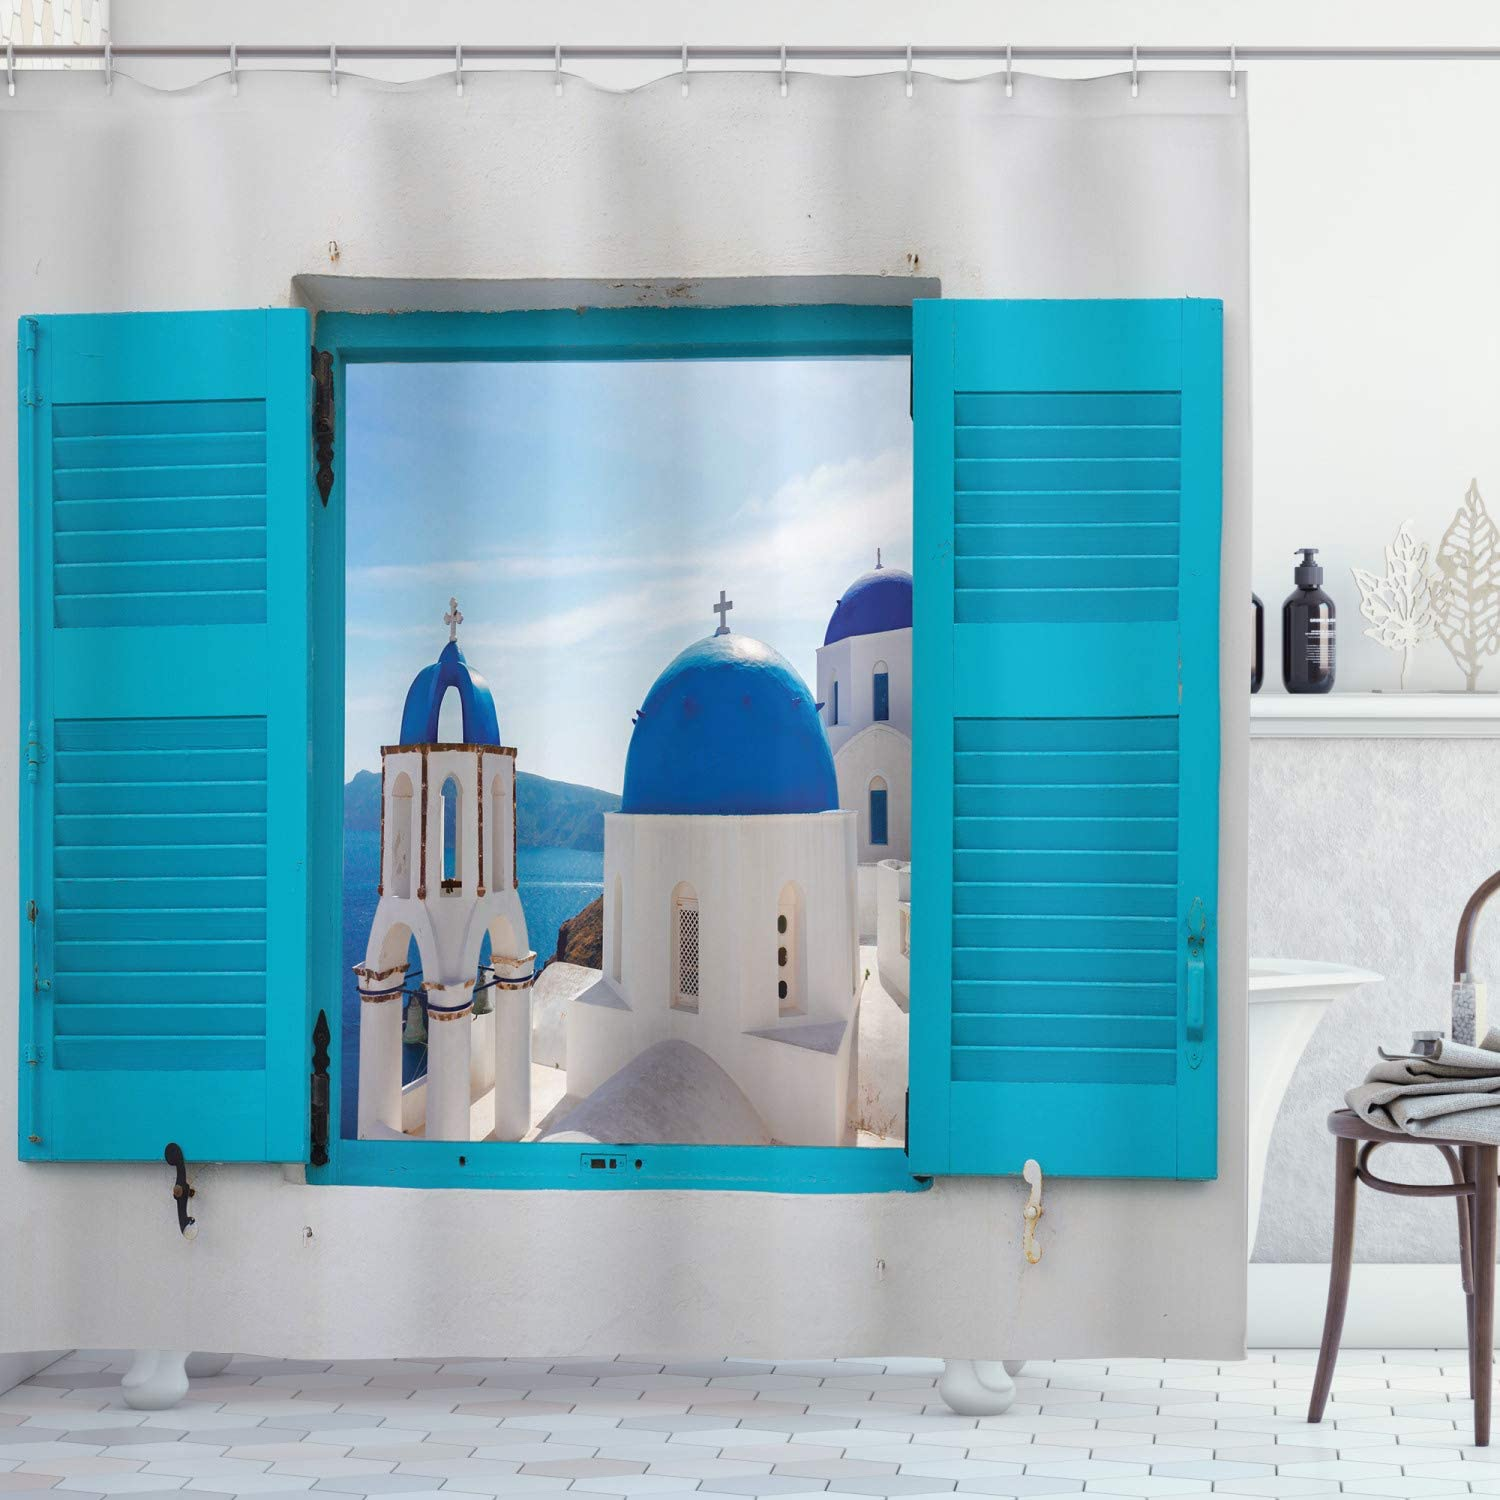 Ambesonne Landscape Shower Curtain, Window with View of Classical Building with Blue Domes Oia Santorini Greece, Cloth Fabric Bathroom Decor Set with Hooks, 70 Inches, Aqua Blue White